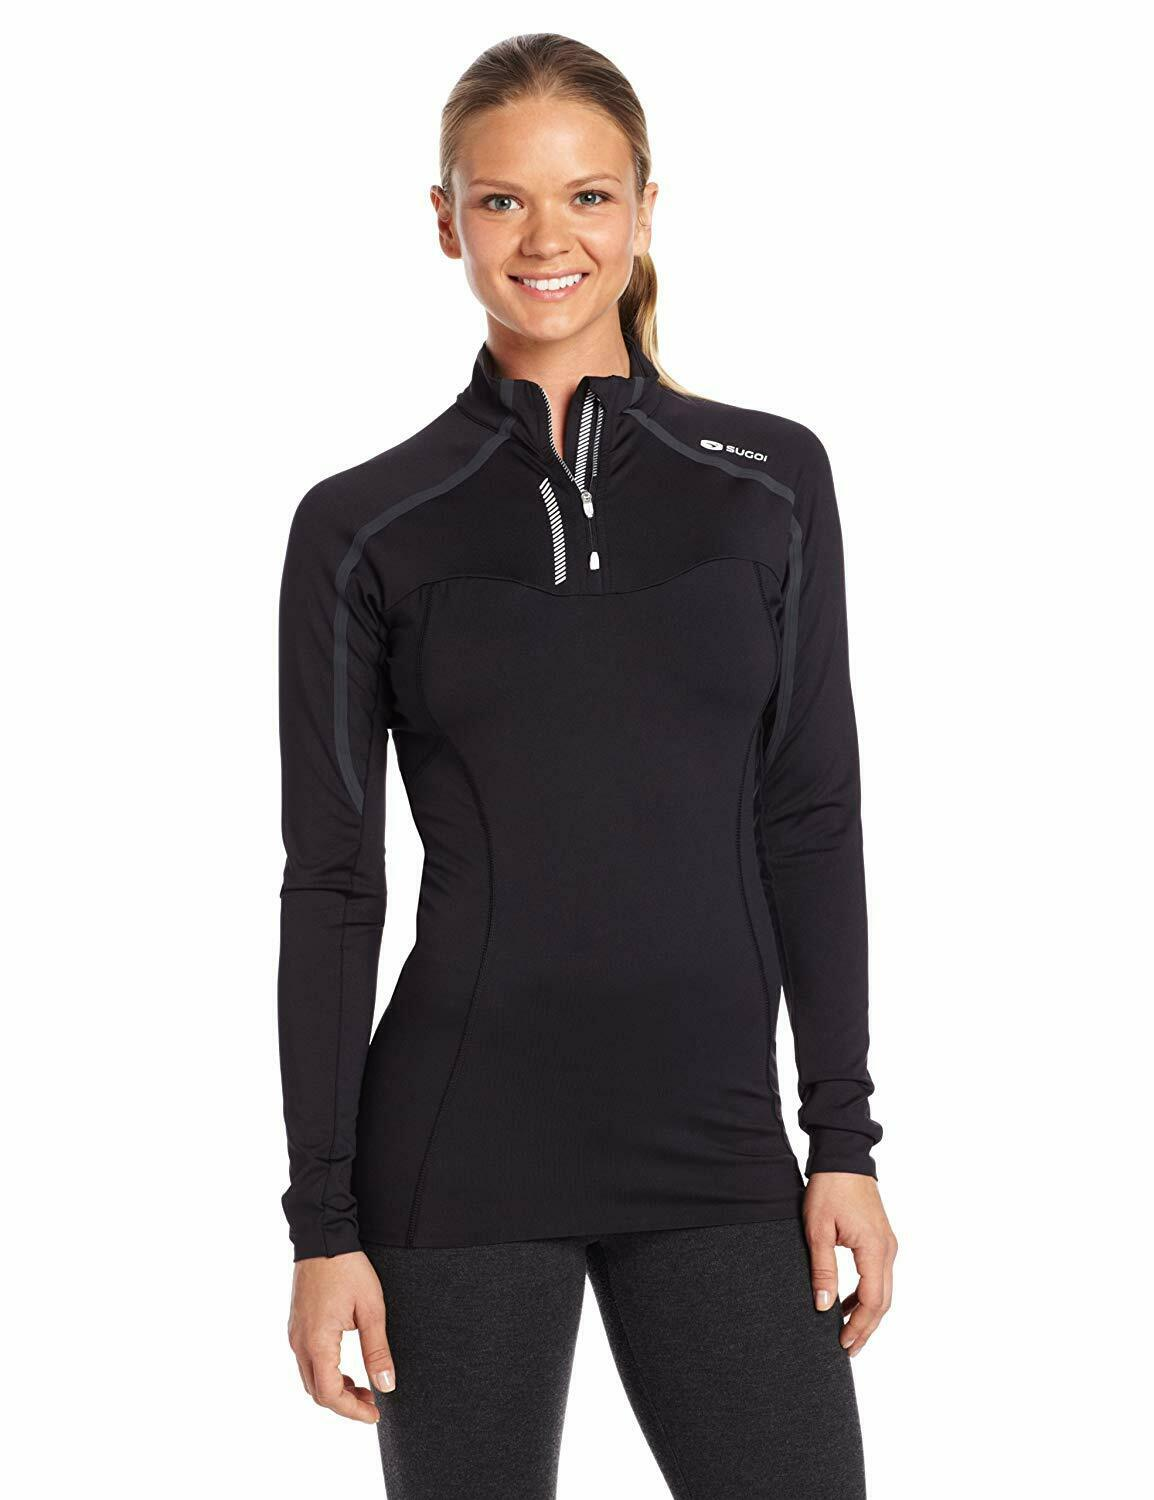 SUGOi Women's RSR Race Top MEDIUM